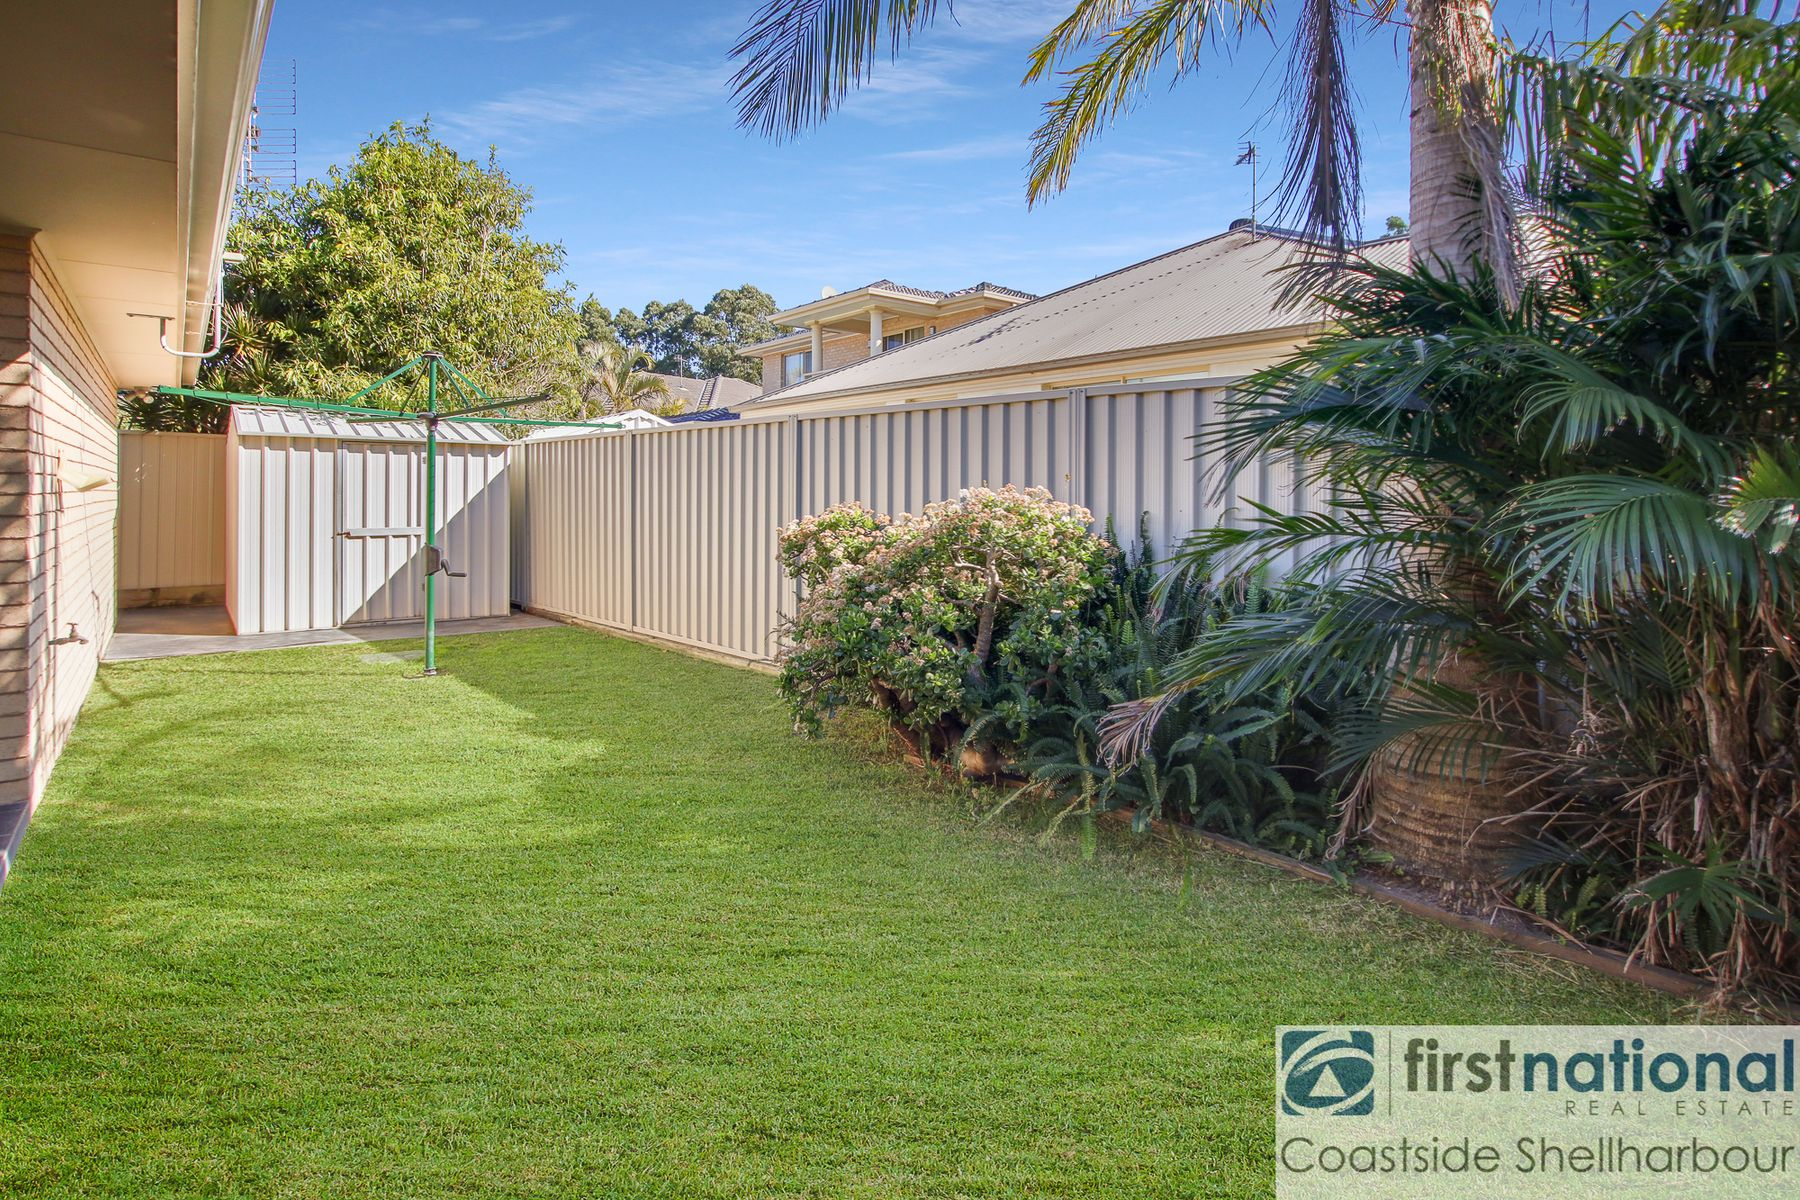 8 Saltwater Avenue, Shell Cove, NSW 2529